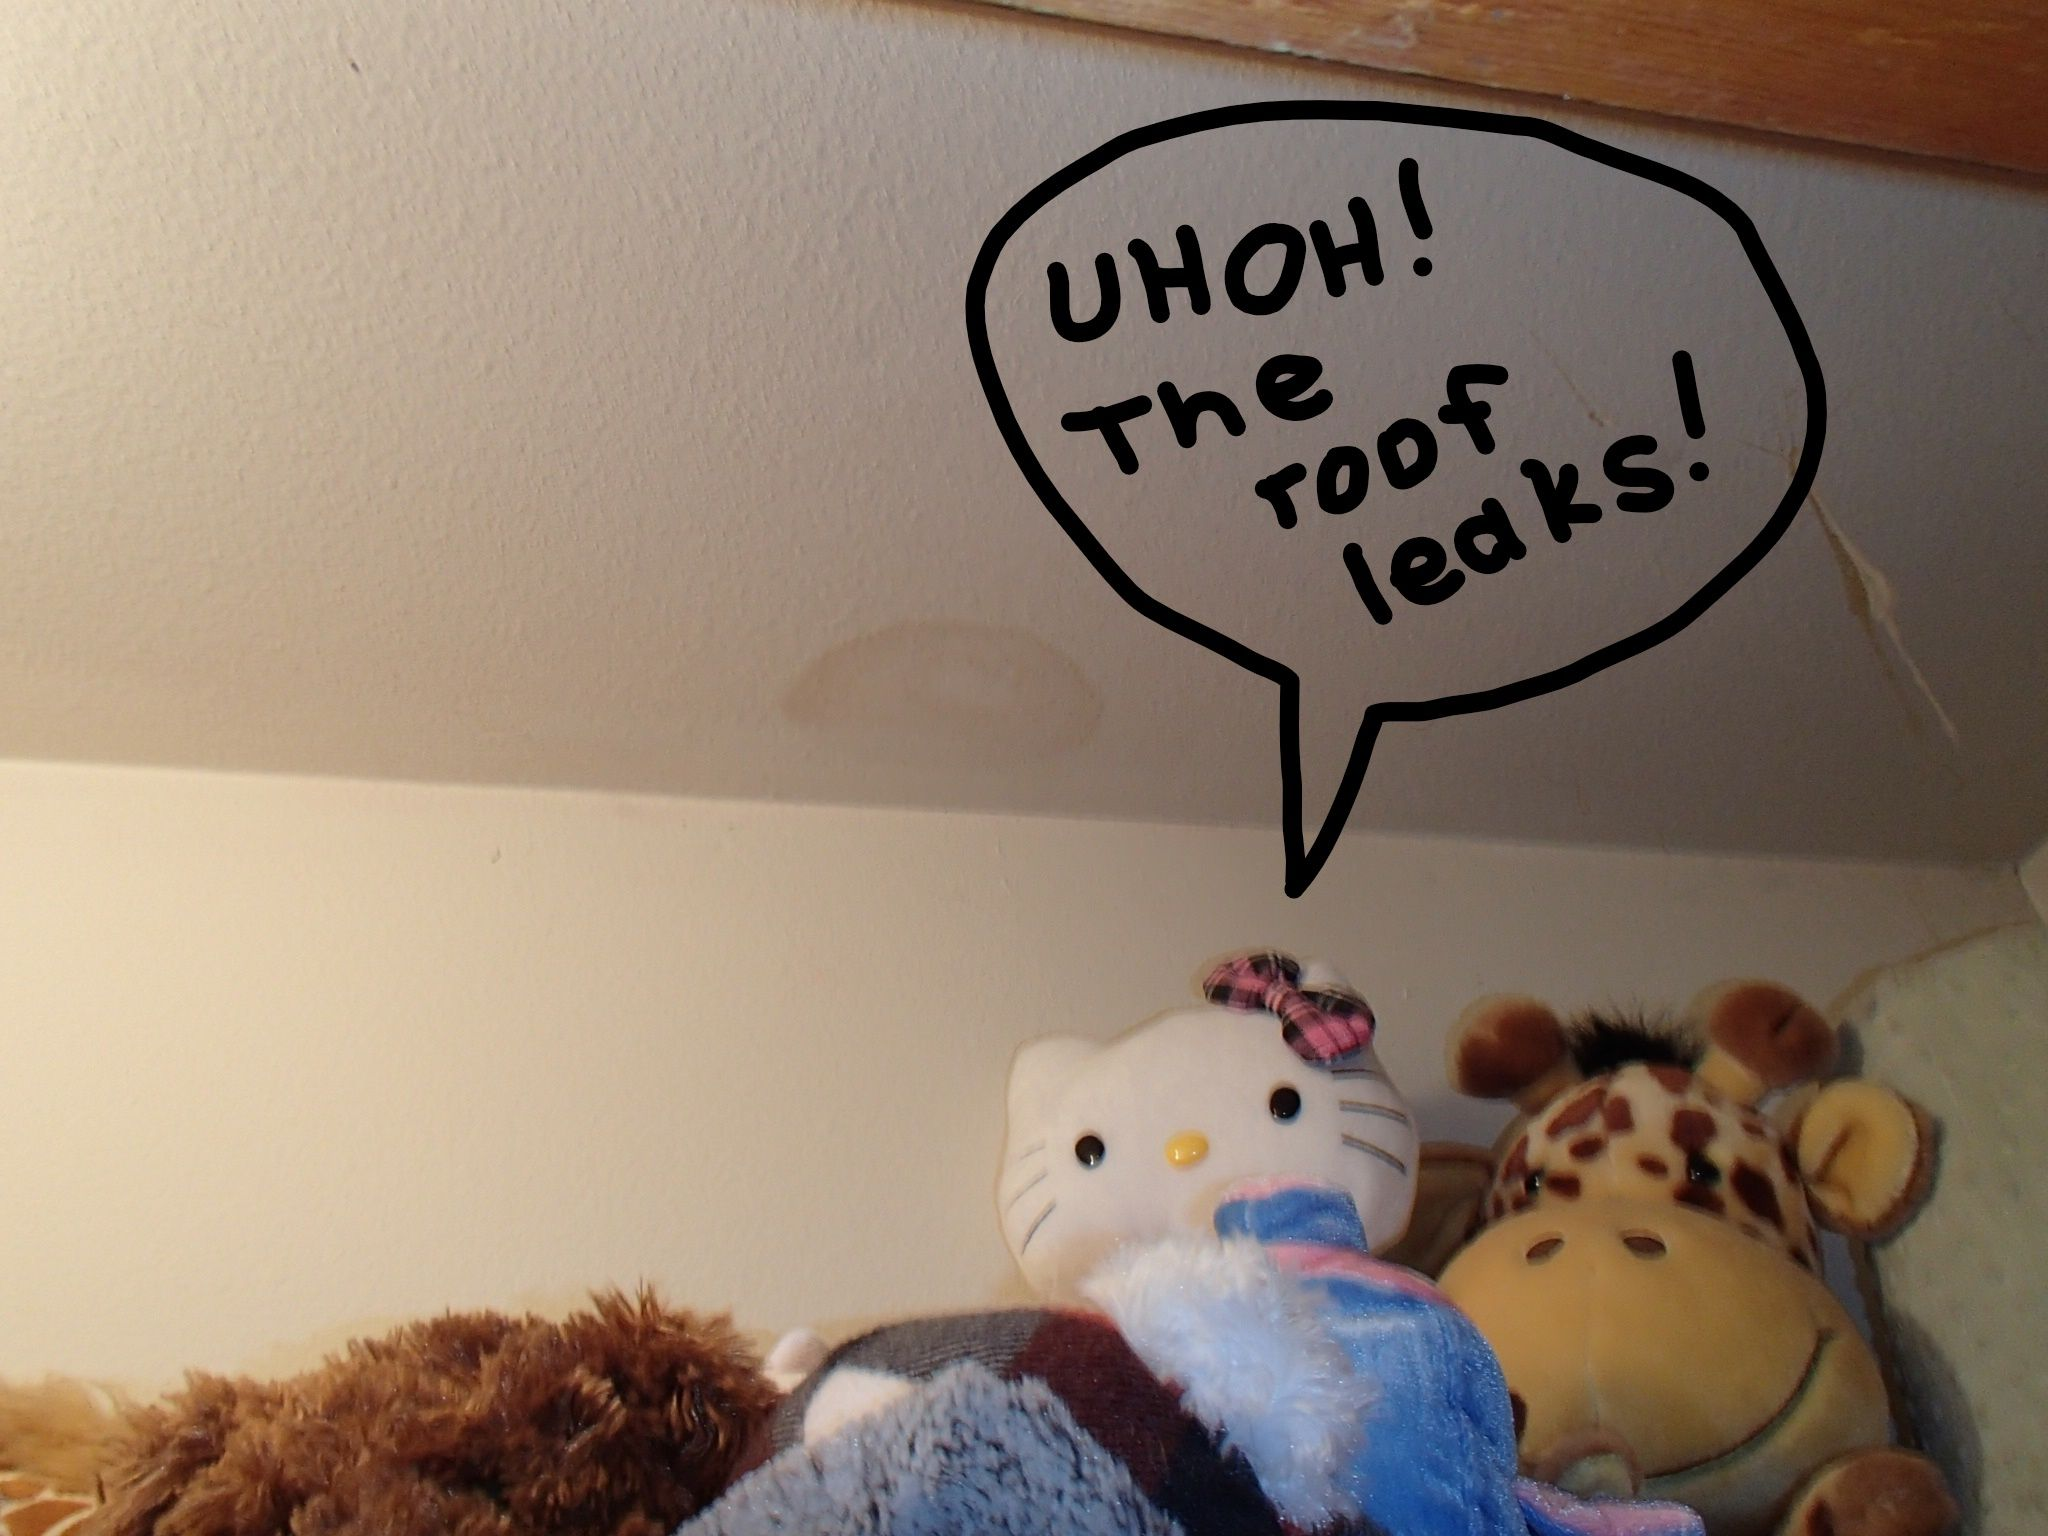 Ceiling stains usually are an indication of problems above